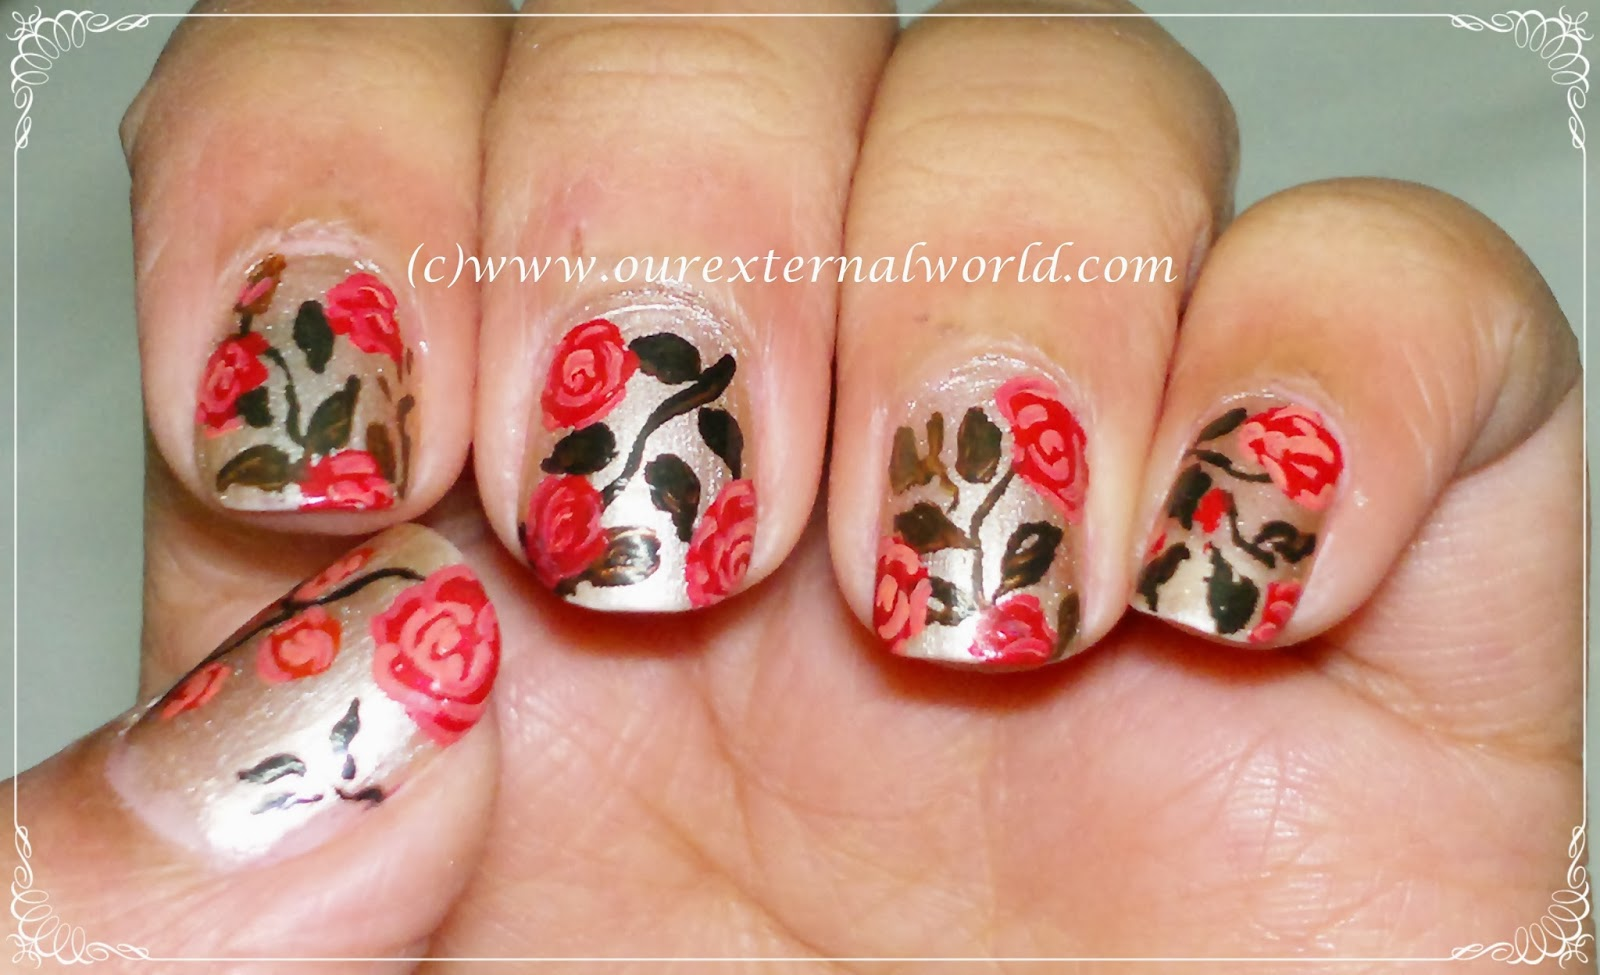 Vintage Rose Nail Art Tutorial | www.pixshark.com - Images ...